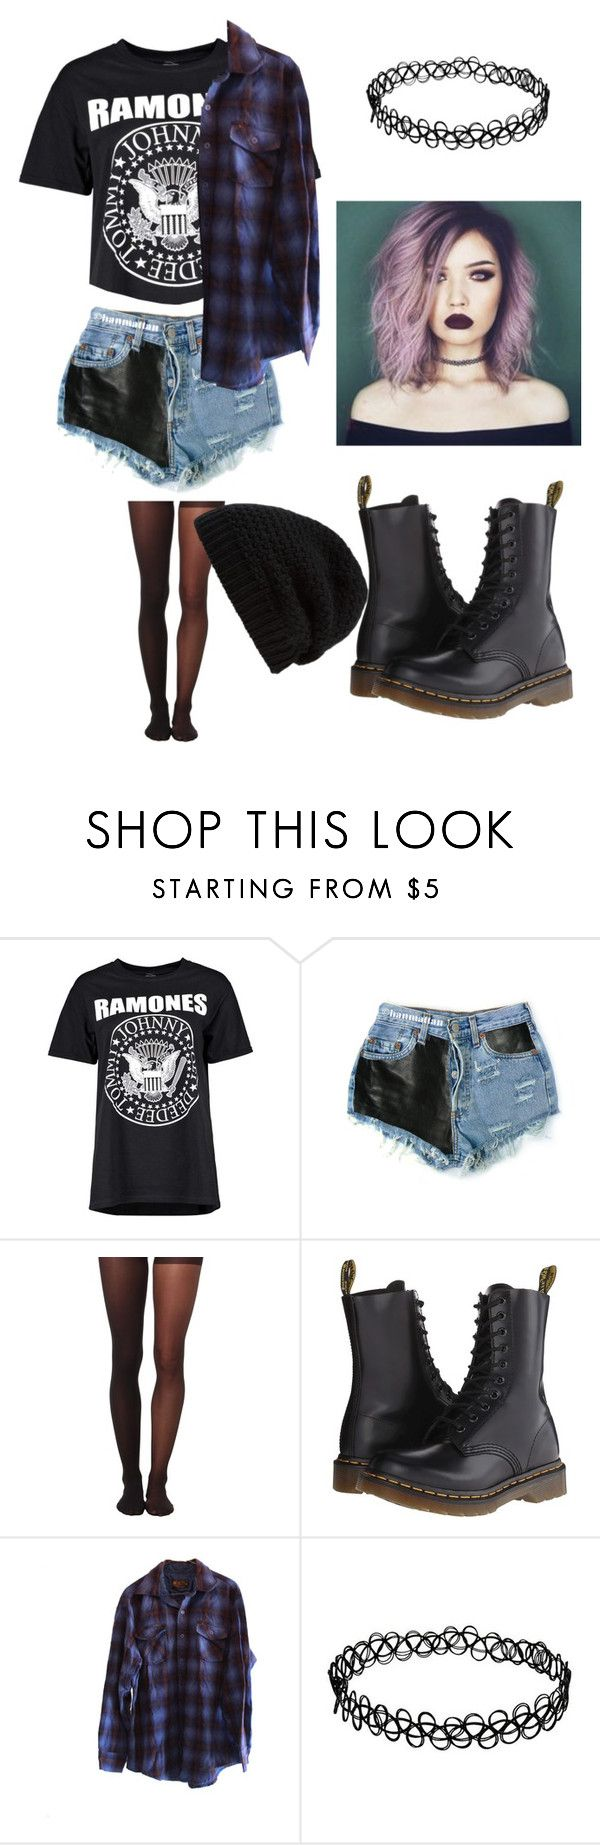 """90s grunge inspired"" by new-broken-scene-637 ❤ liked on Polyvore featuring Boohoo, Levi's, Wolford, Dr. Martens and Rick Owens"